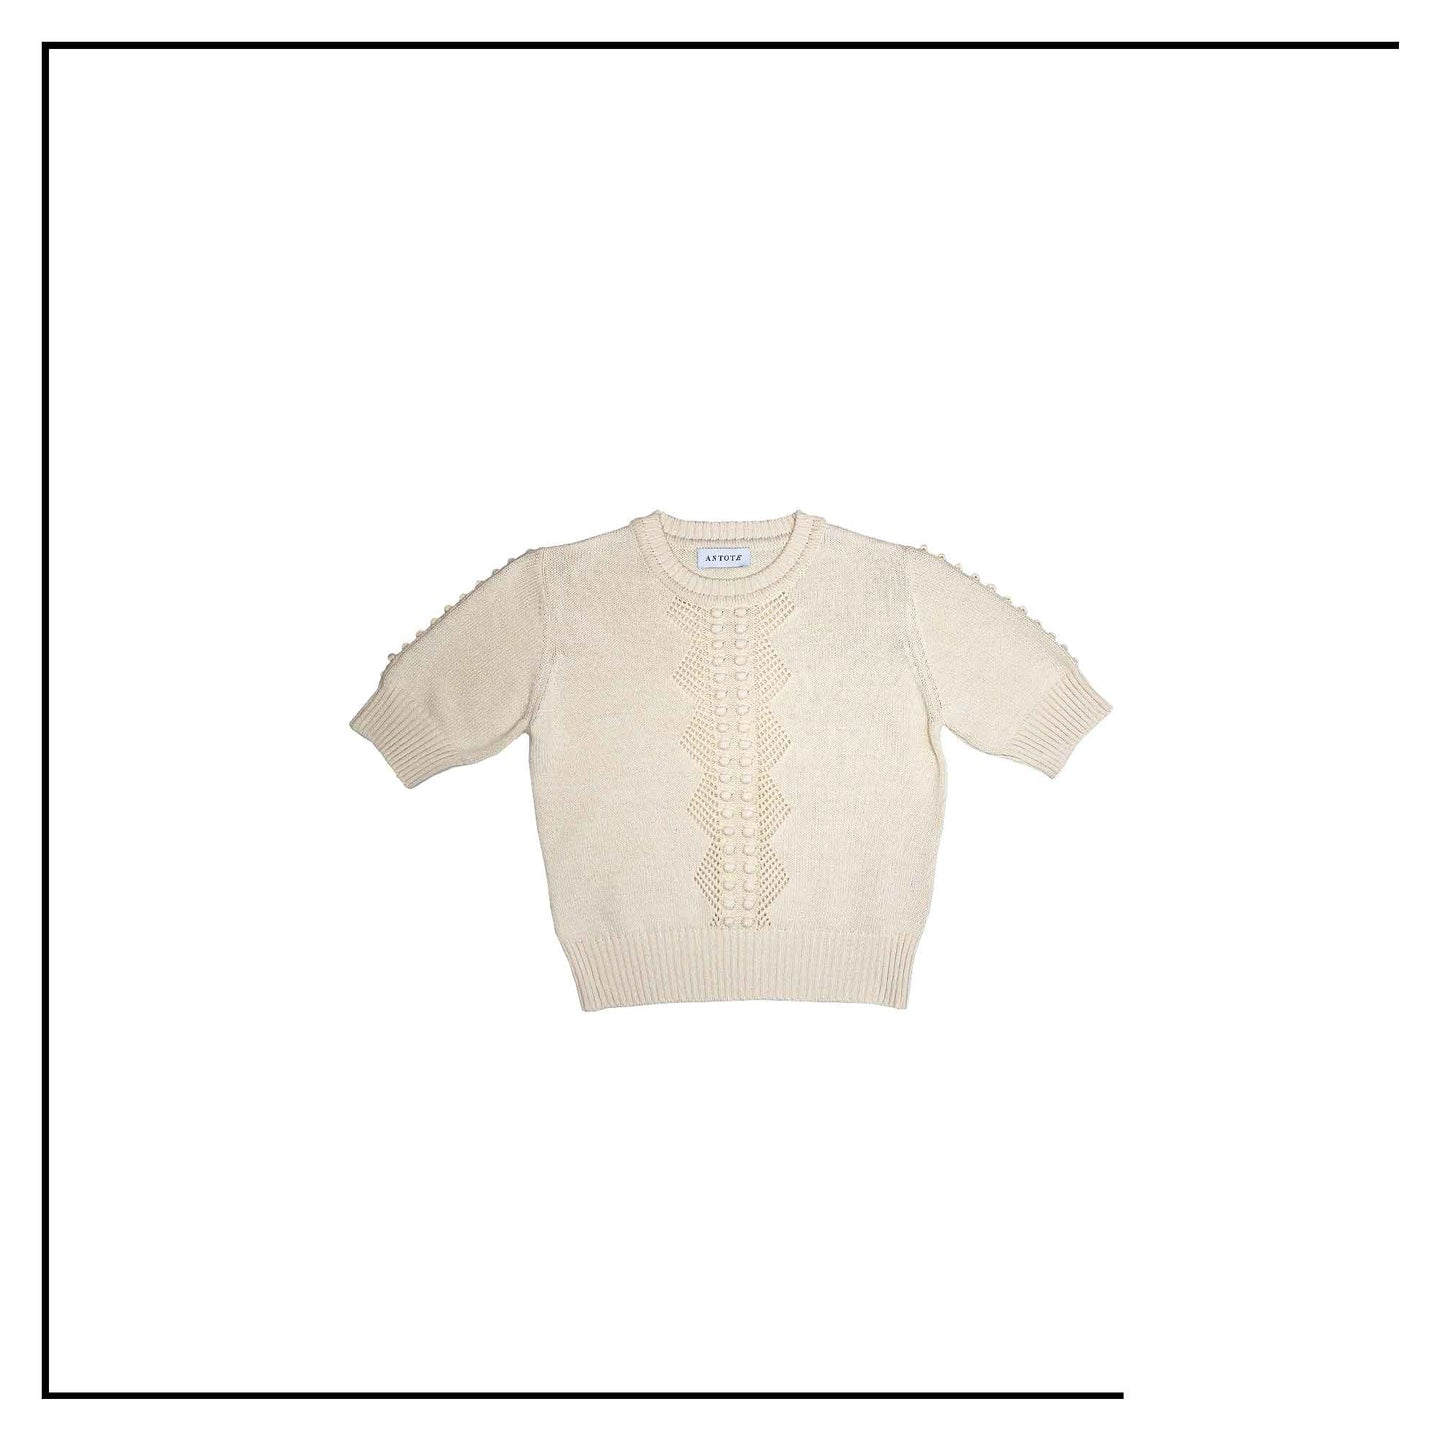 ANTOTE_RU Knitted short sleeve top Cream